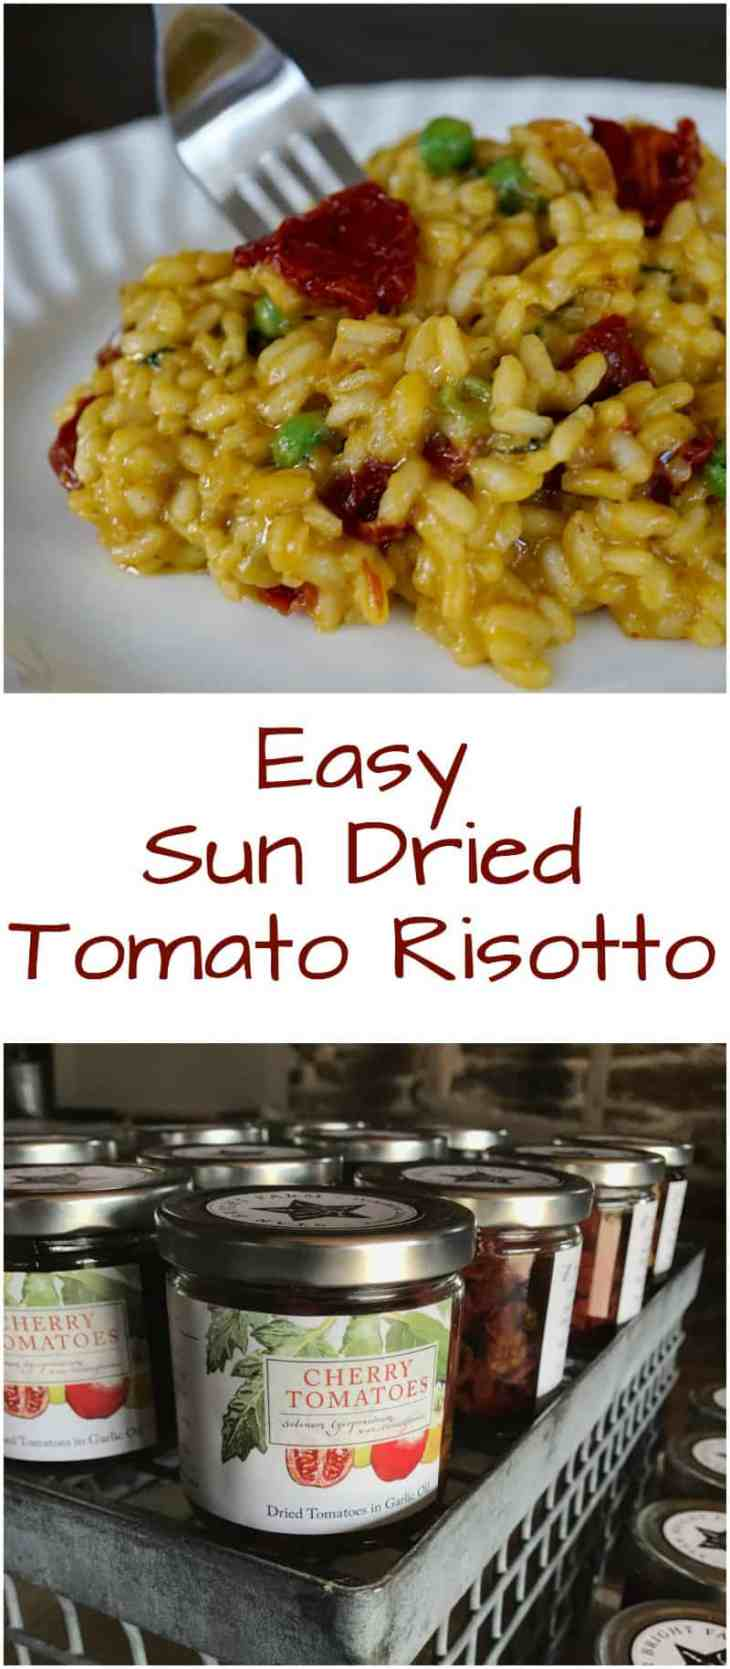 sun dried tomato risotto